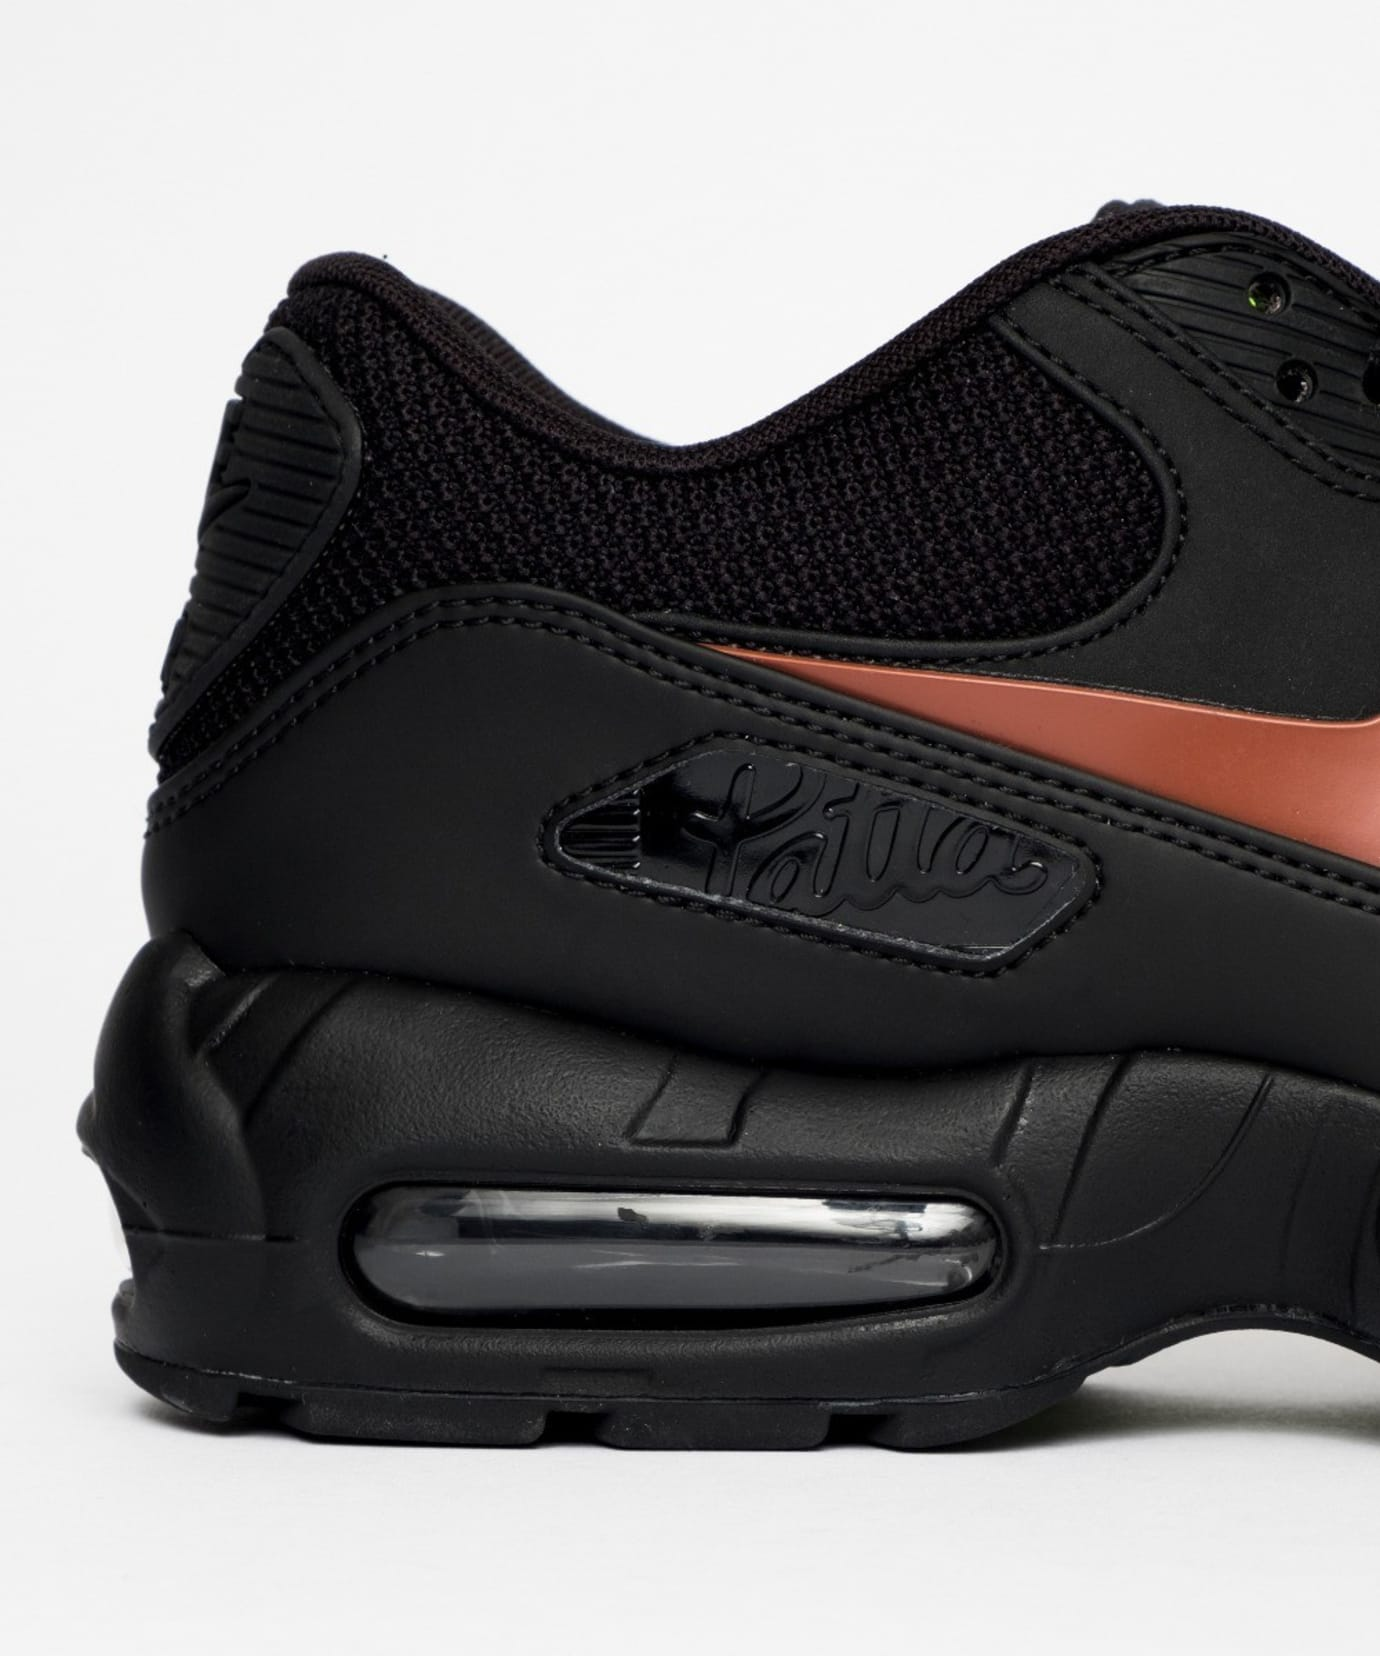 Patta x Nike Air Max 90 x 95 'Black' CJ4741-001 (Detail)